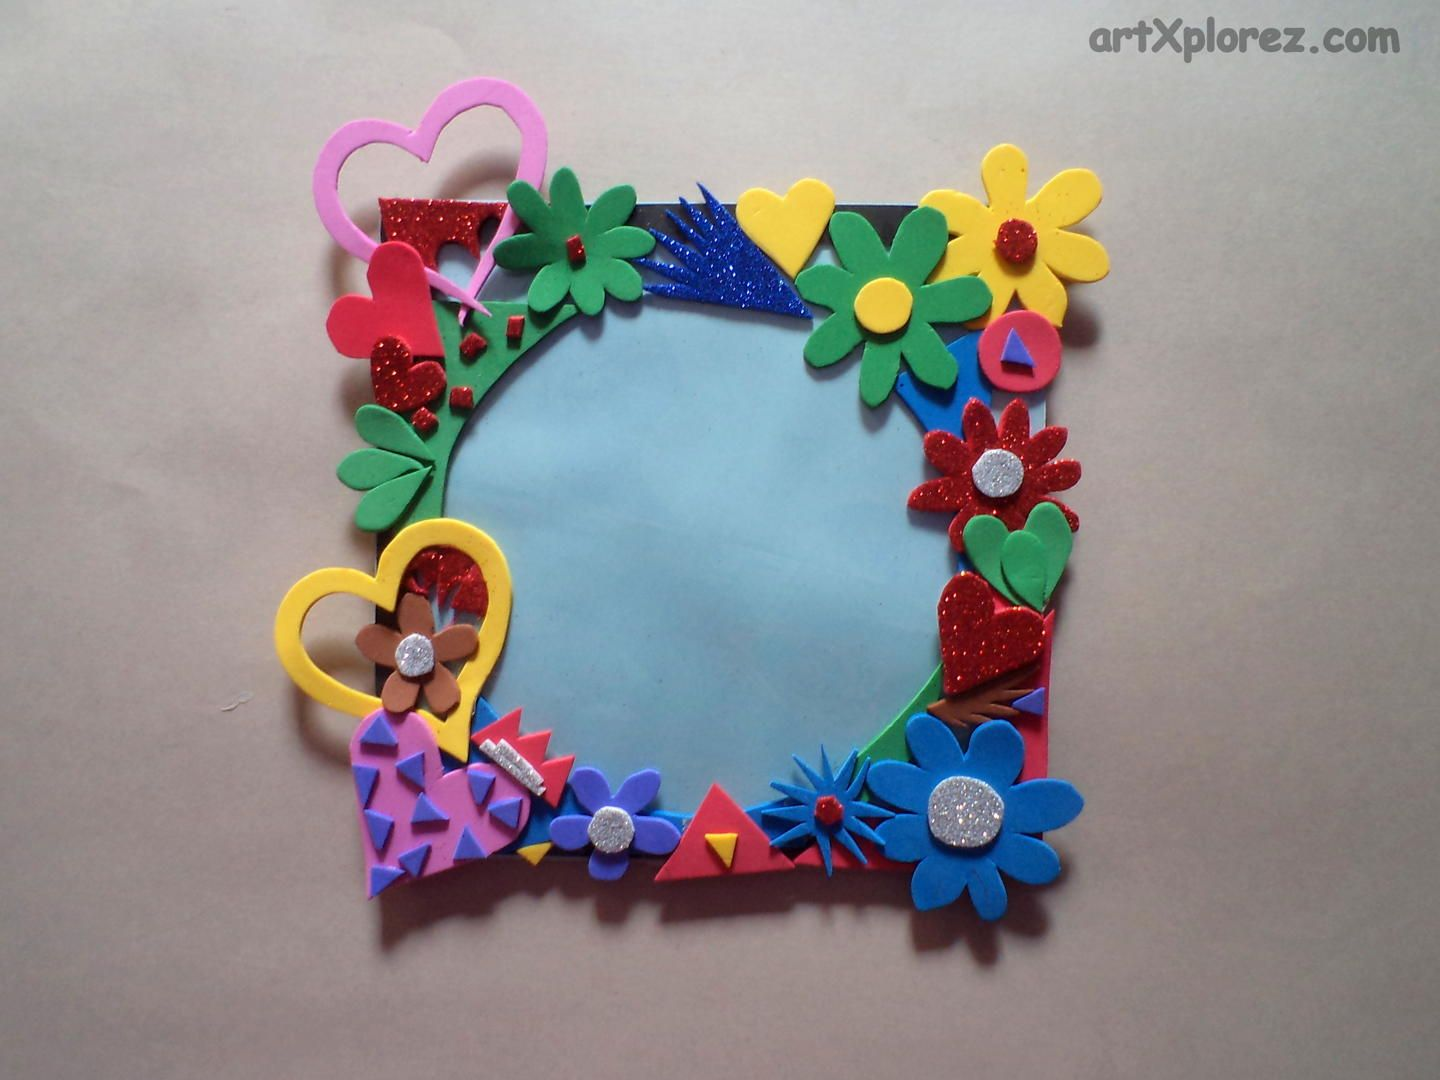 Handmade crafts using waste materials google search for Simple craft work using waste materials